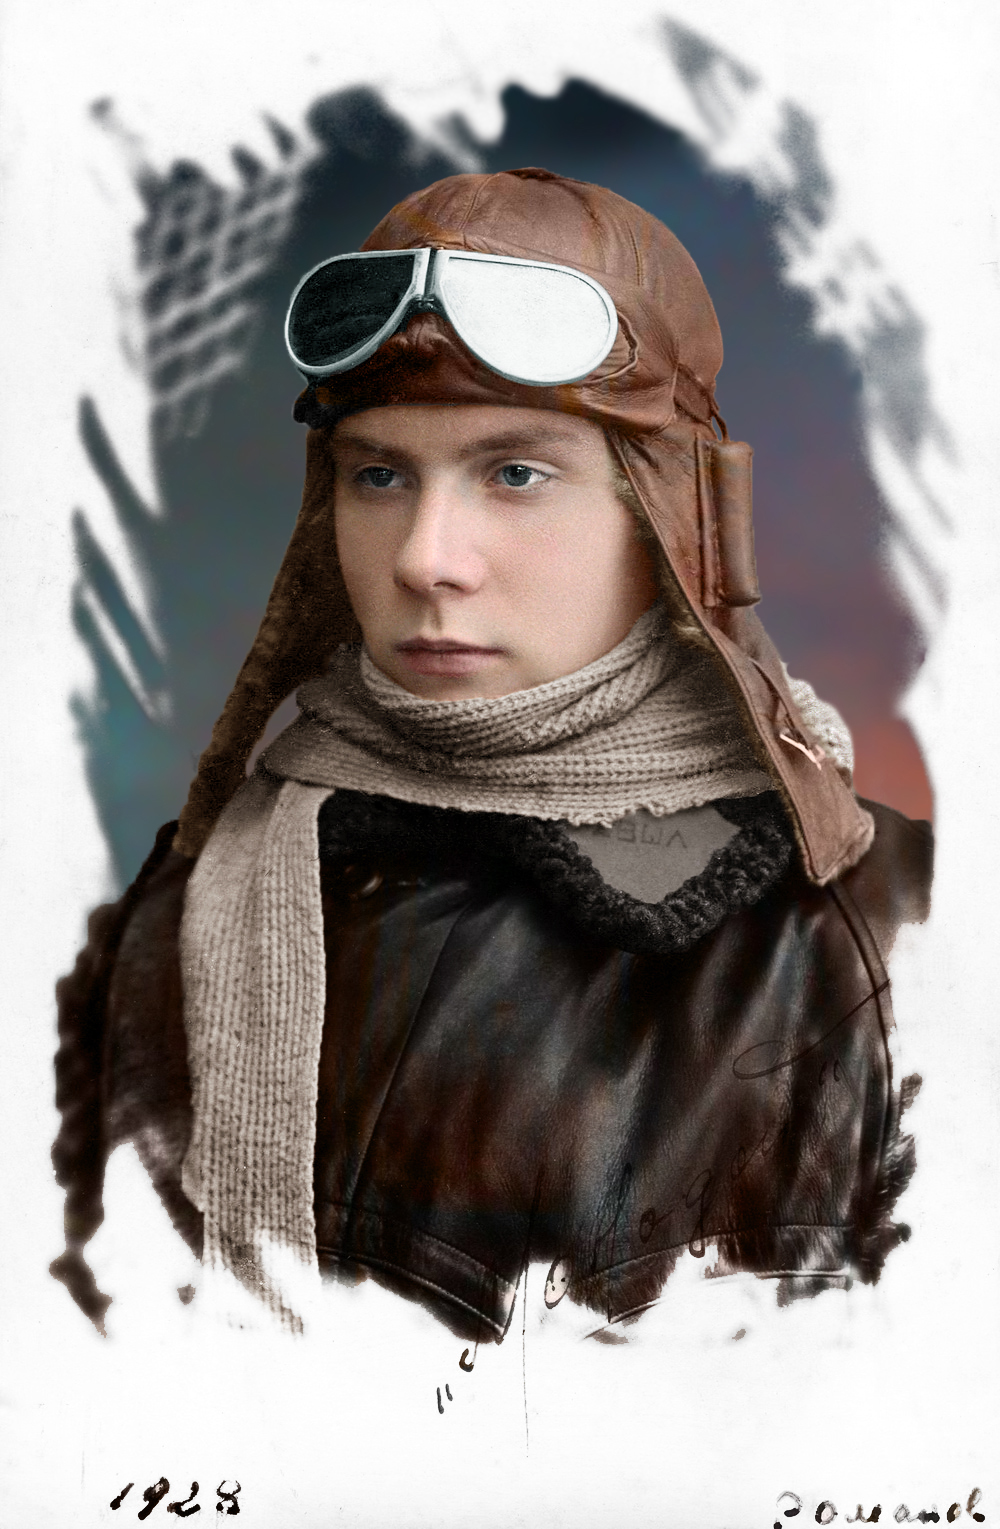 russian_pilot_by_klimbims-d7gtc33.jpg